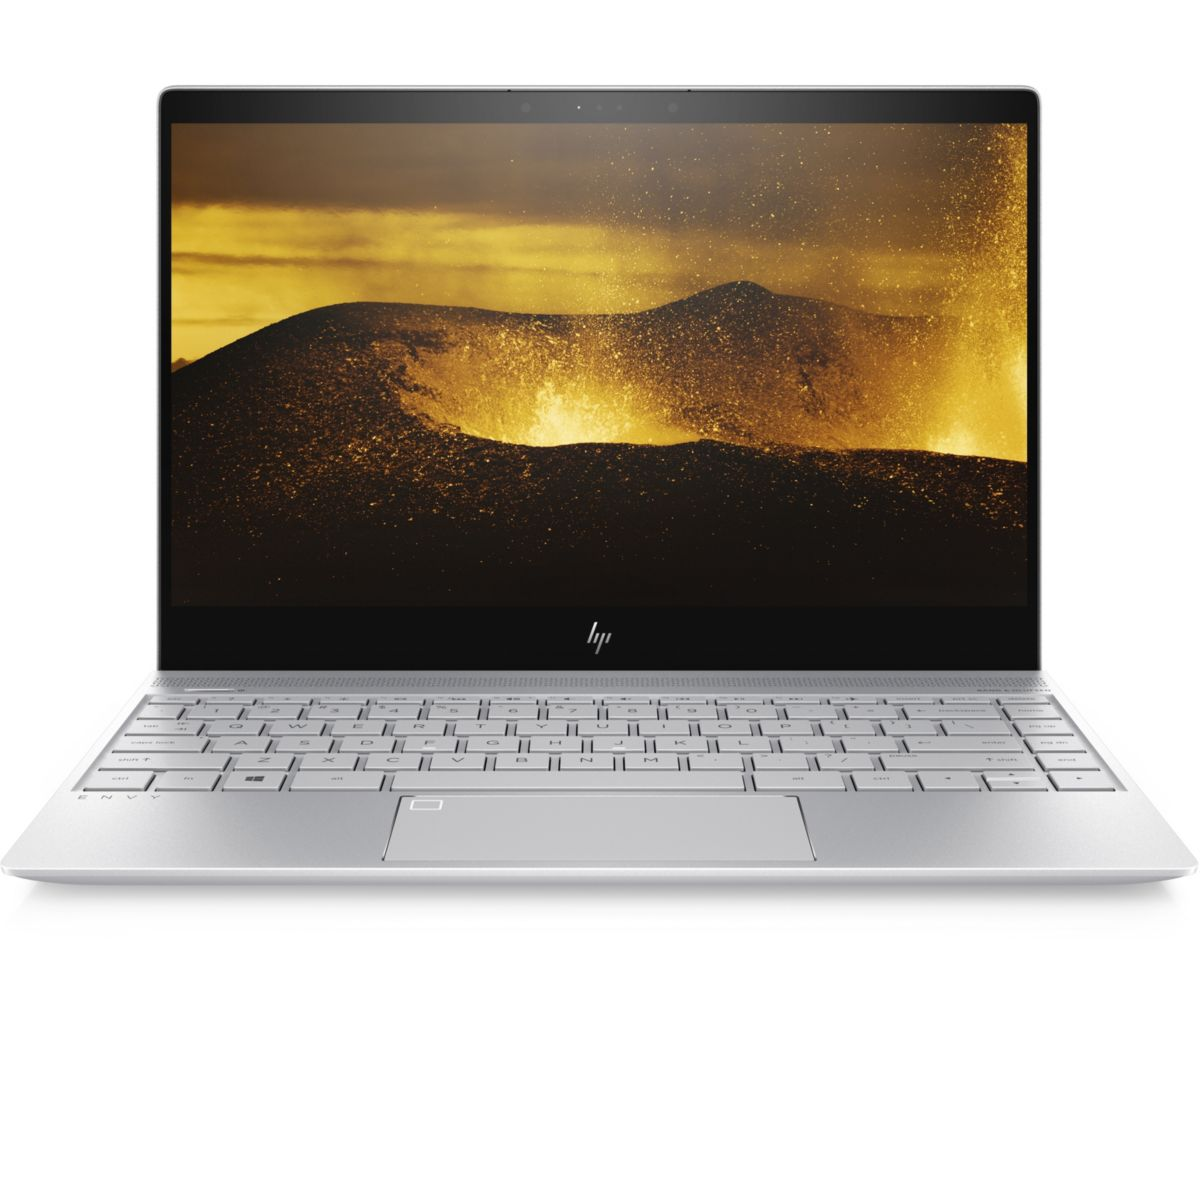 Ordinateur portable HP Envy 13-ad101nf